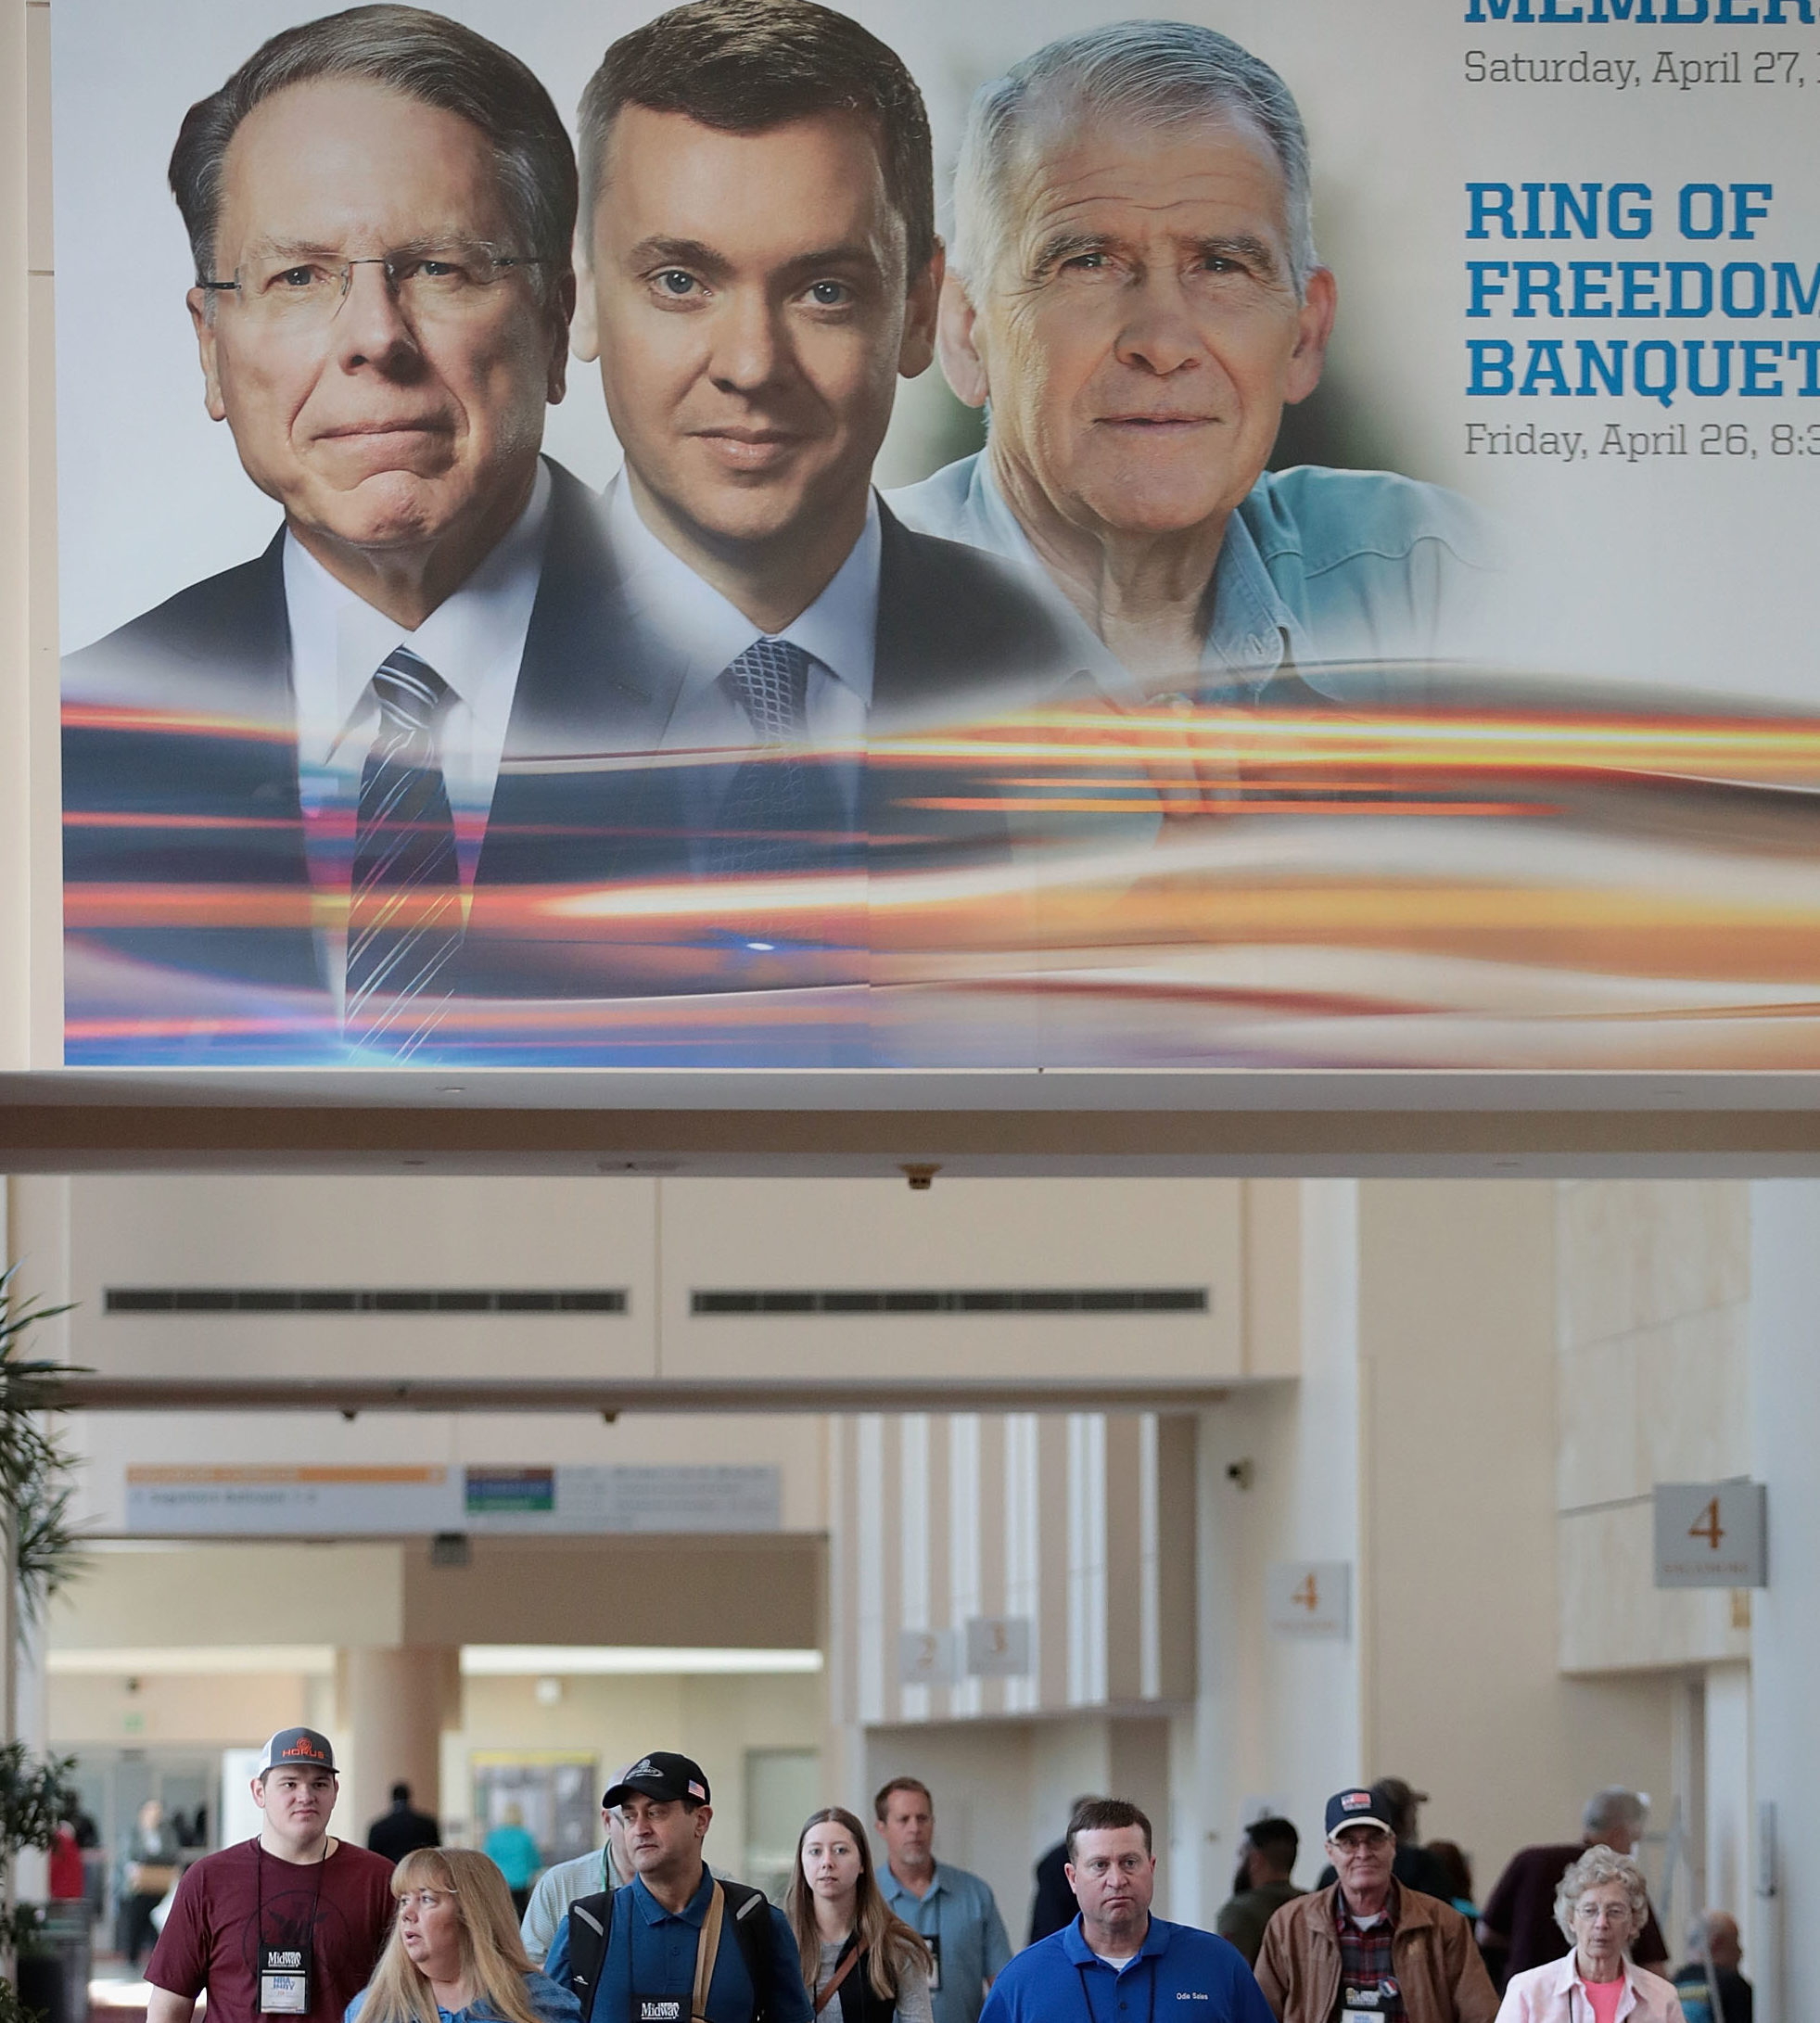 Guest walk under a poster featuring Wayne LaPierre (L), NRA vice president and CEO, Chris Cox (C), executive director of the NRA-ILA, and NRA president Oliver North outside a conference room where the NRA annual meeting of members was being held at the 148th NRA Annual Meetings and Exhibits on April 27, 2019 in Indianapolis, Indiana. After much-publicized group infighting, only La Pierre remains. (Photo by Scott Olson/Getty Images)